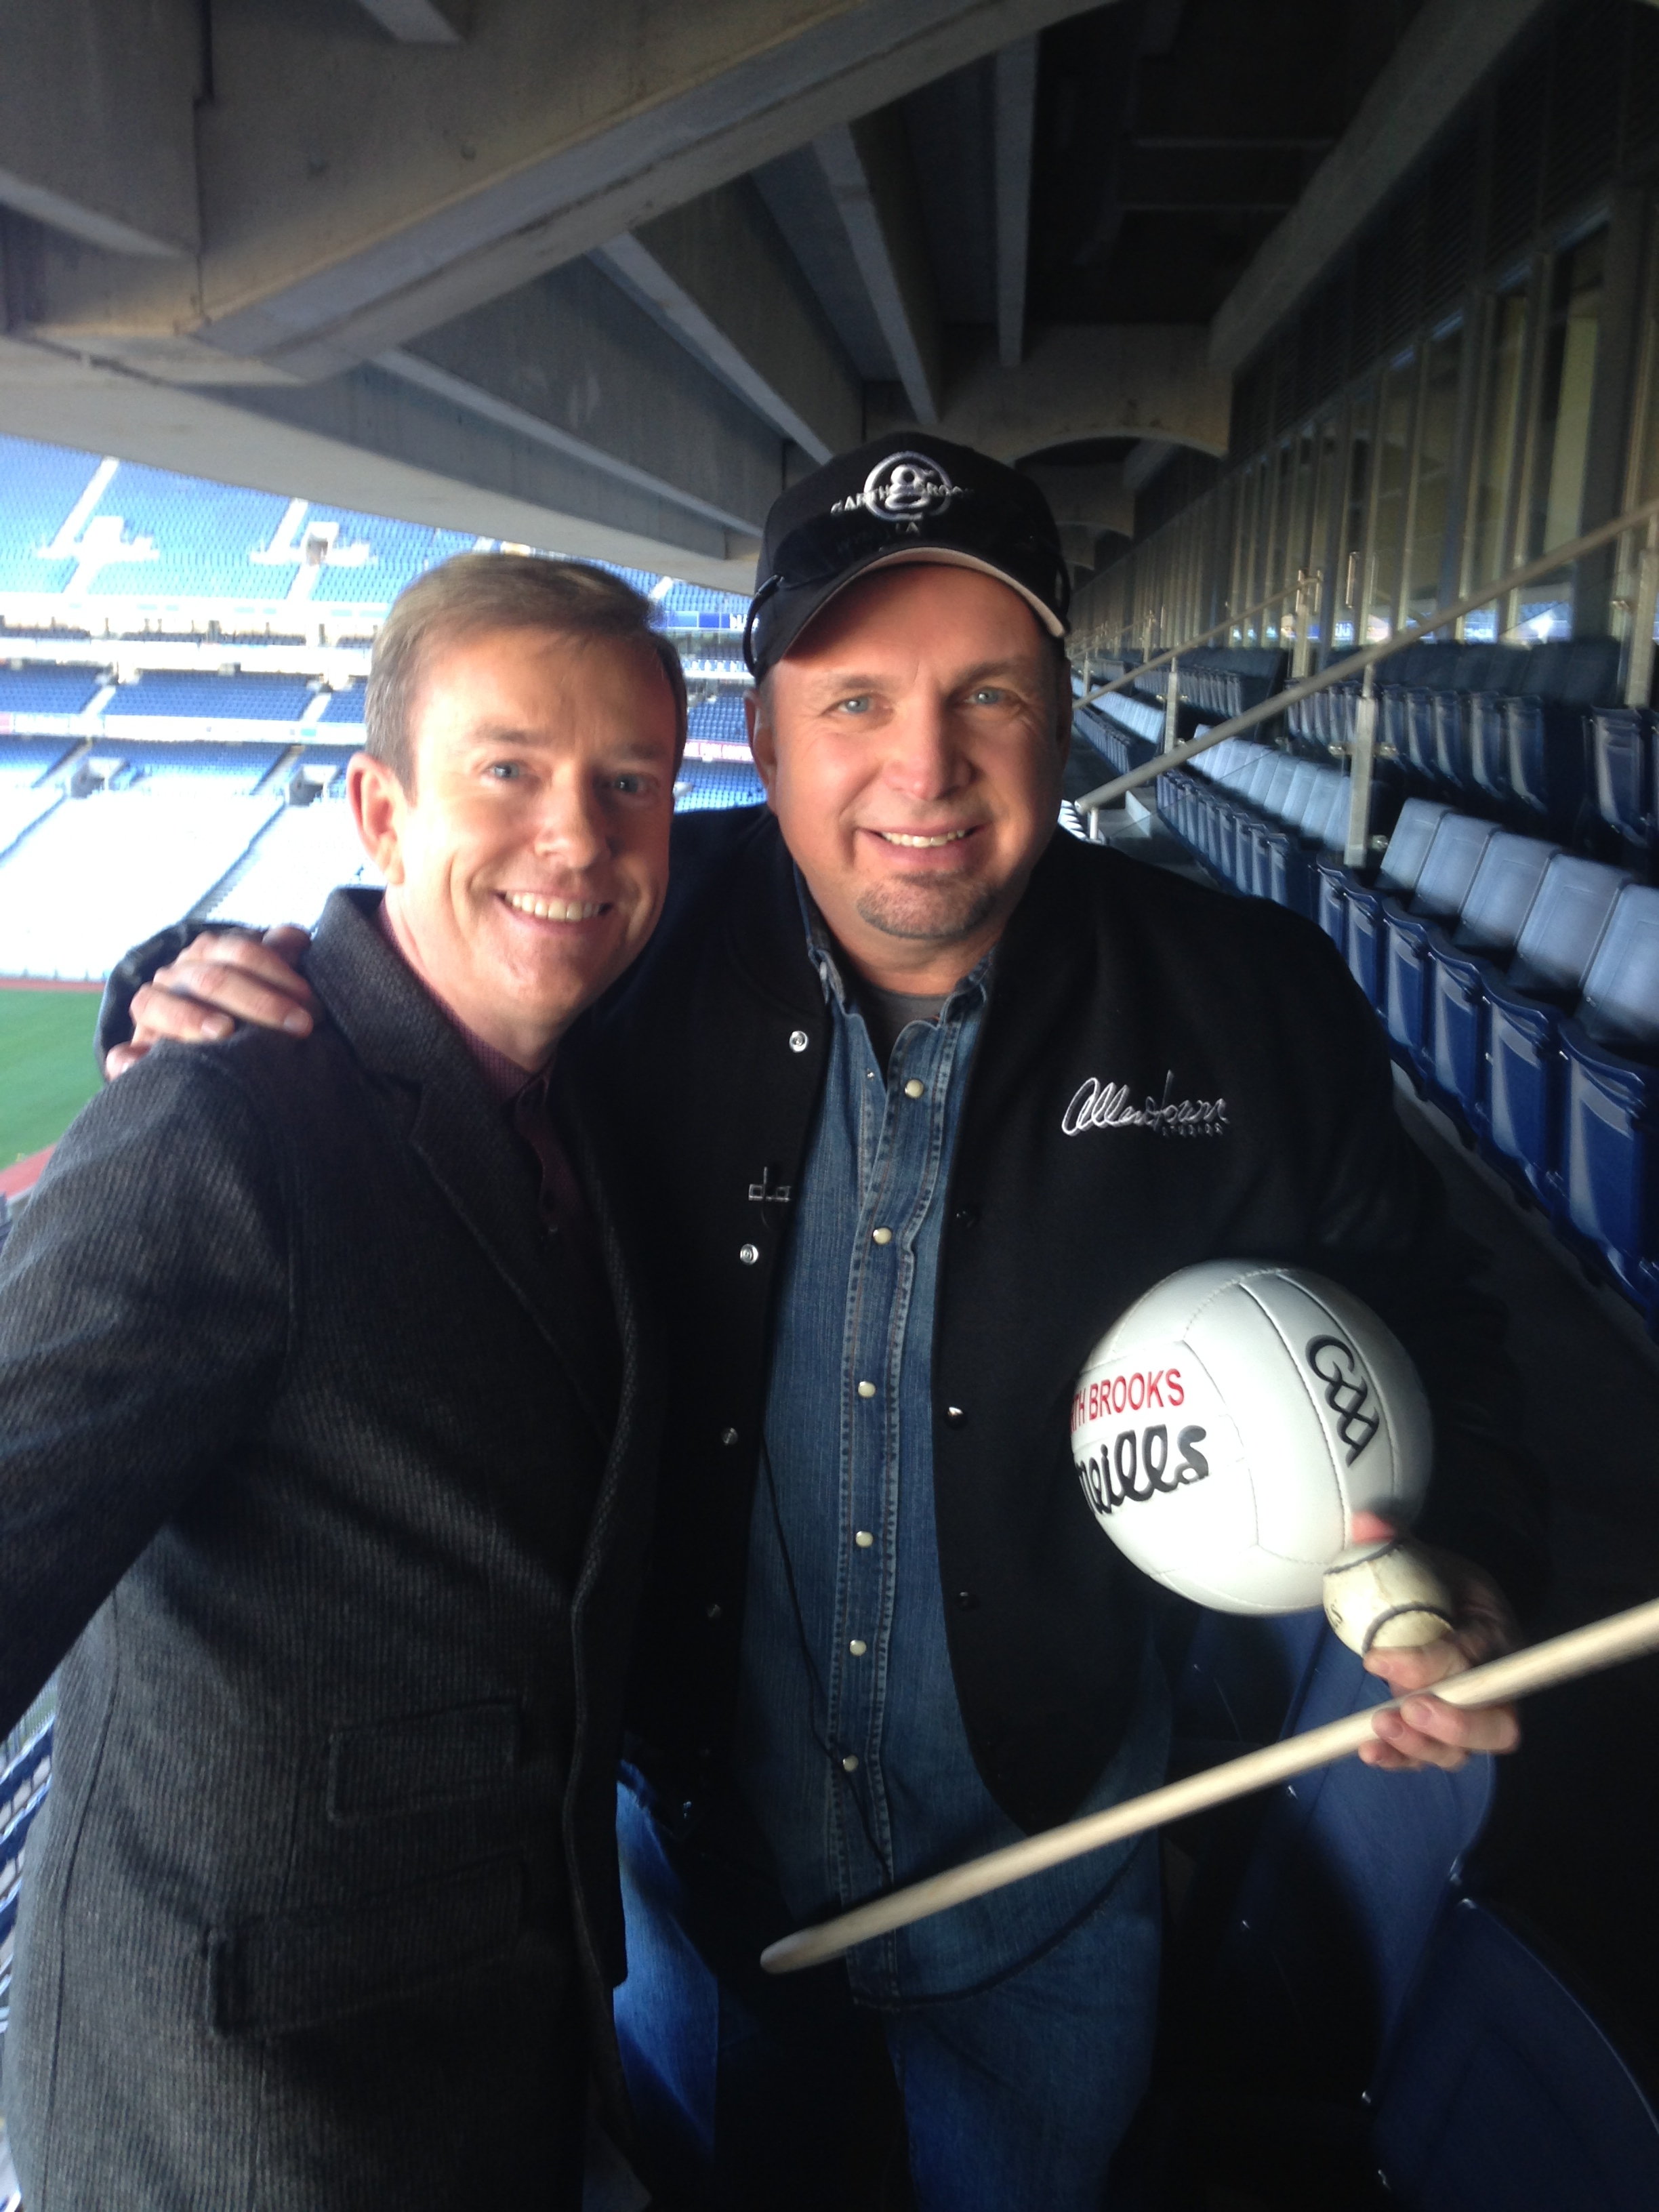 Alan Hughes chats to Garth Brooks about announcing two dates in Croke Park next July.